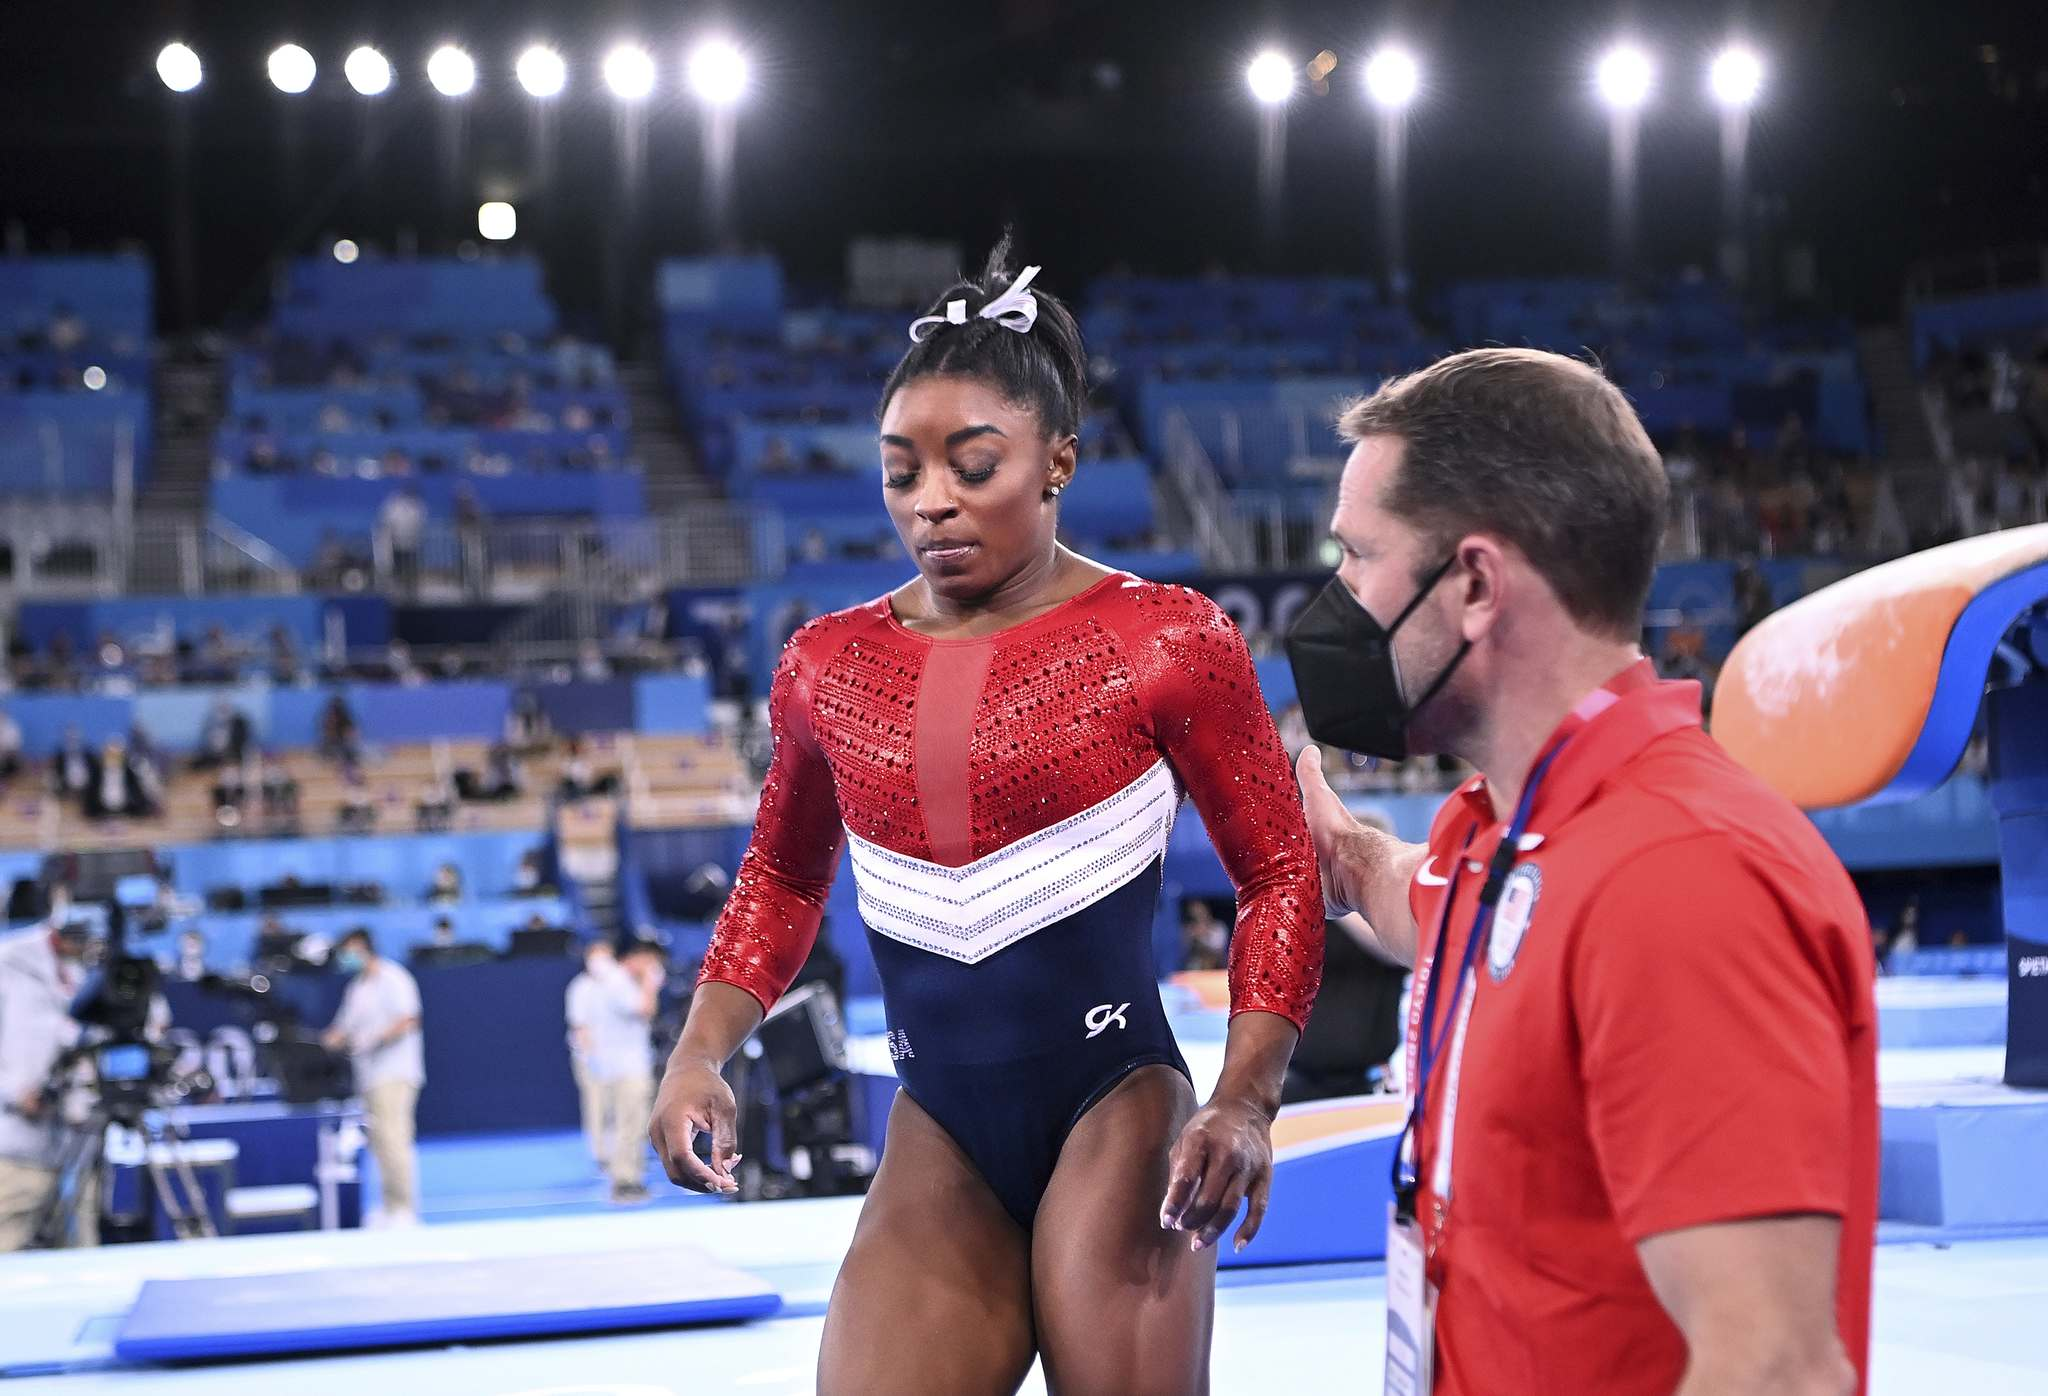 U.S. gymnast Simone Biles is consoled after competing on the vault and withdrawing from competition due to an injury in the women's team final at the 2020 Tokyo Olympics on Tuesday, in Tokyo, Japan.